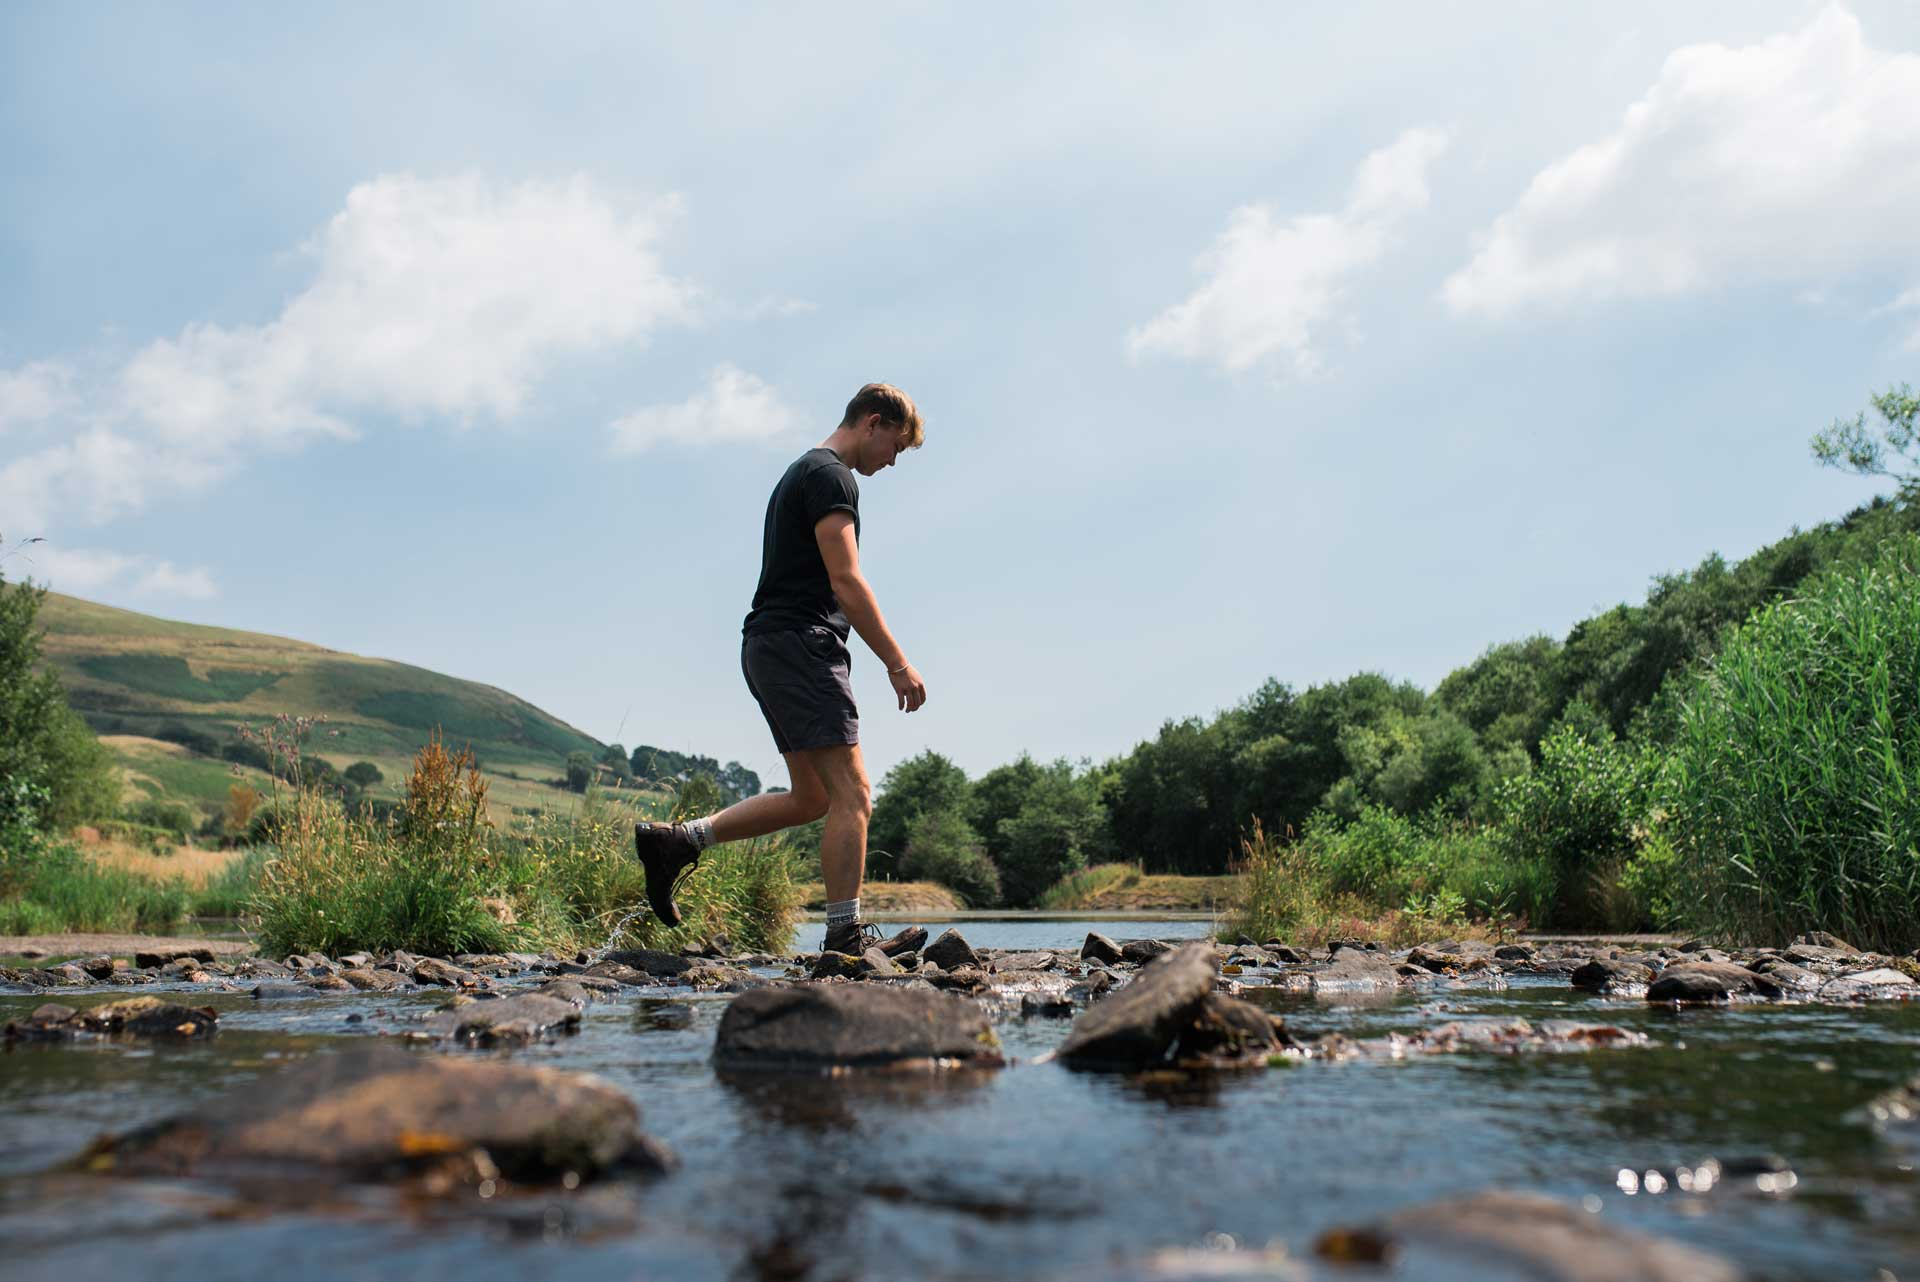 A young adult male crossing the stepping stones of a river